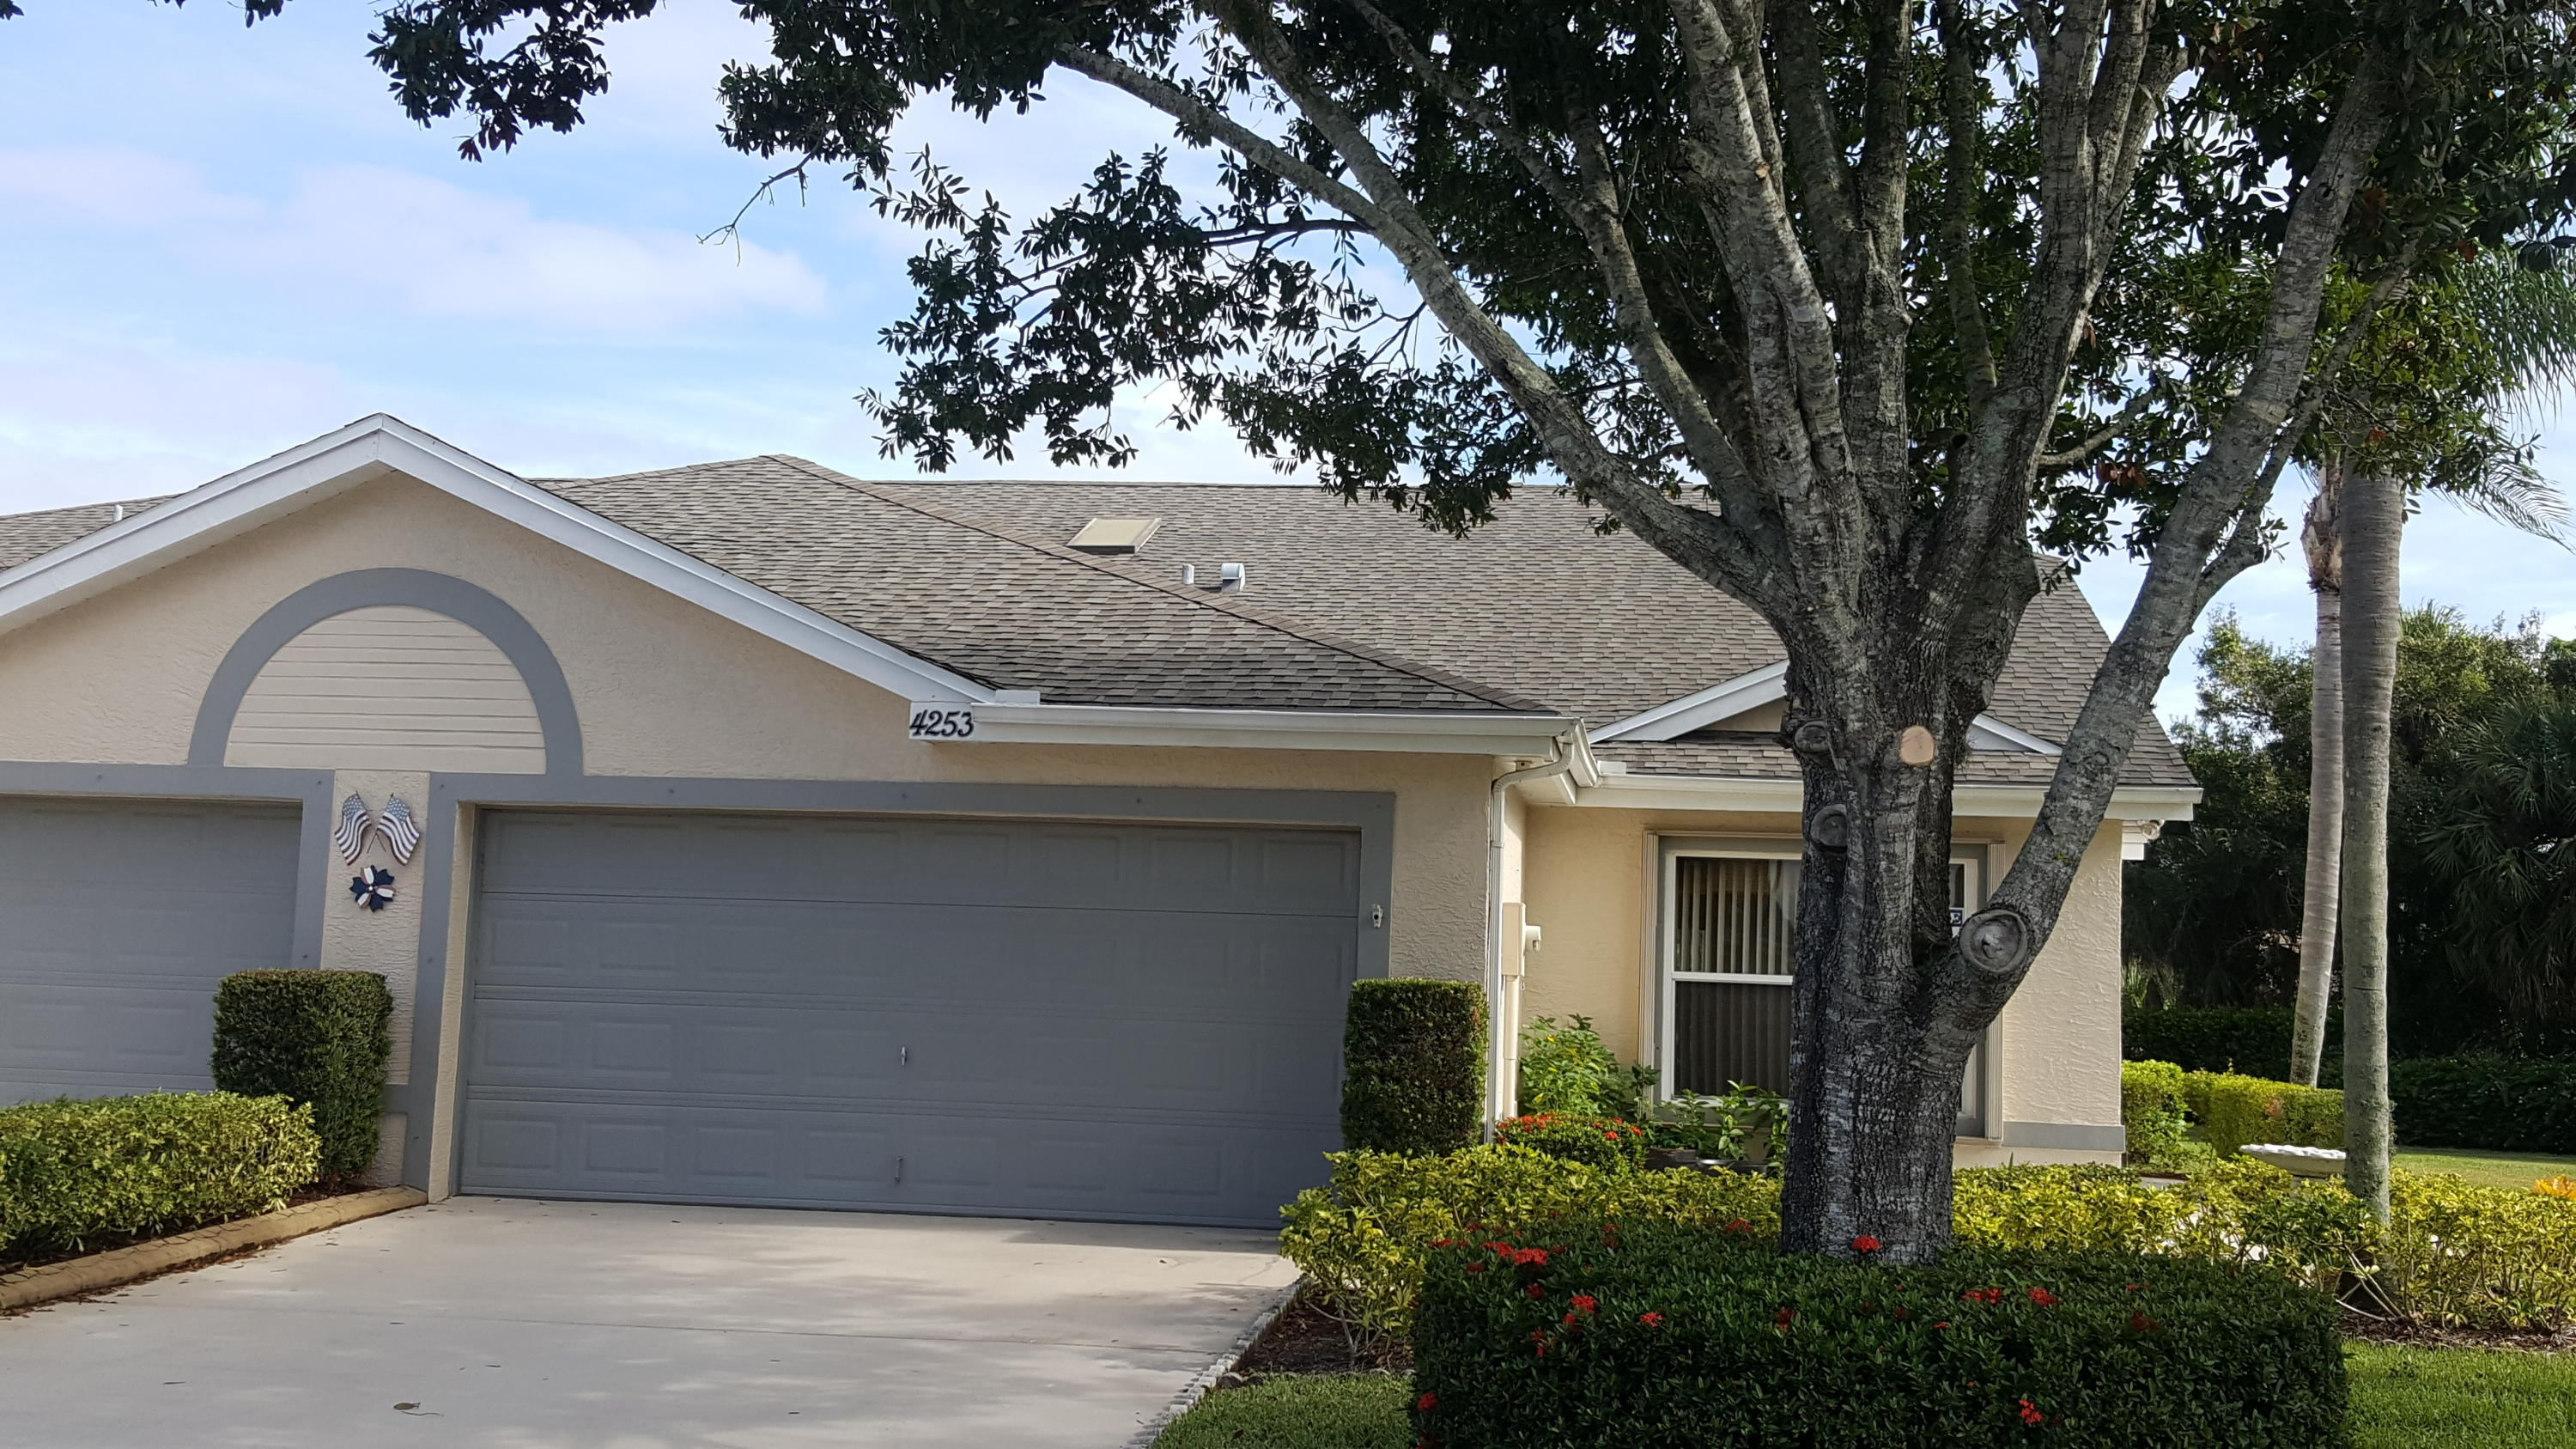 4253 Se Home Way, Port Saint Lucie, FL 34952